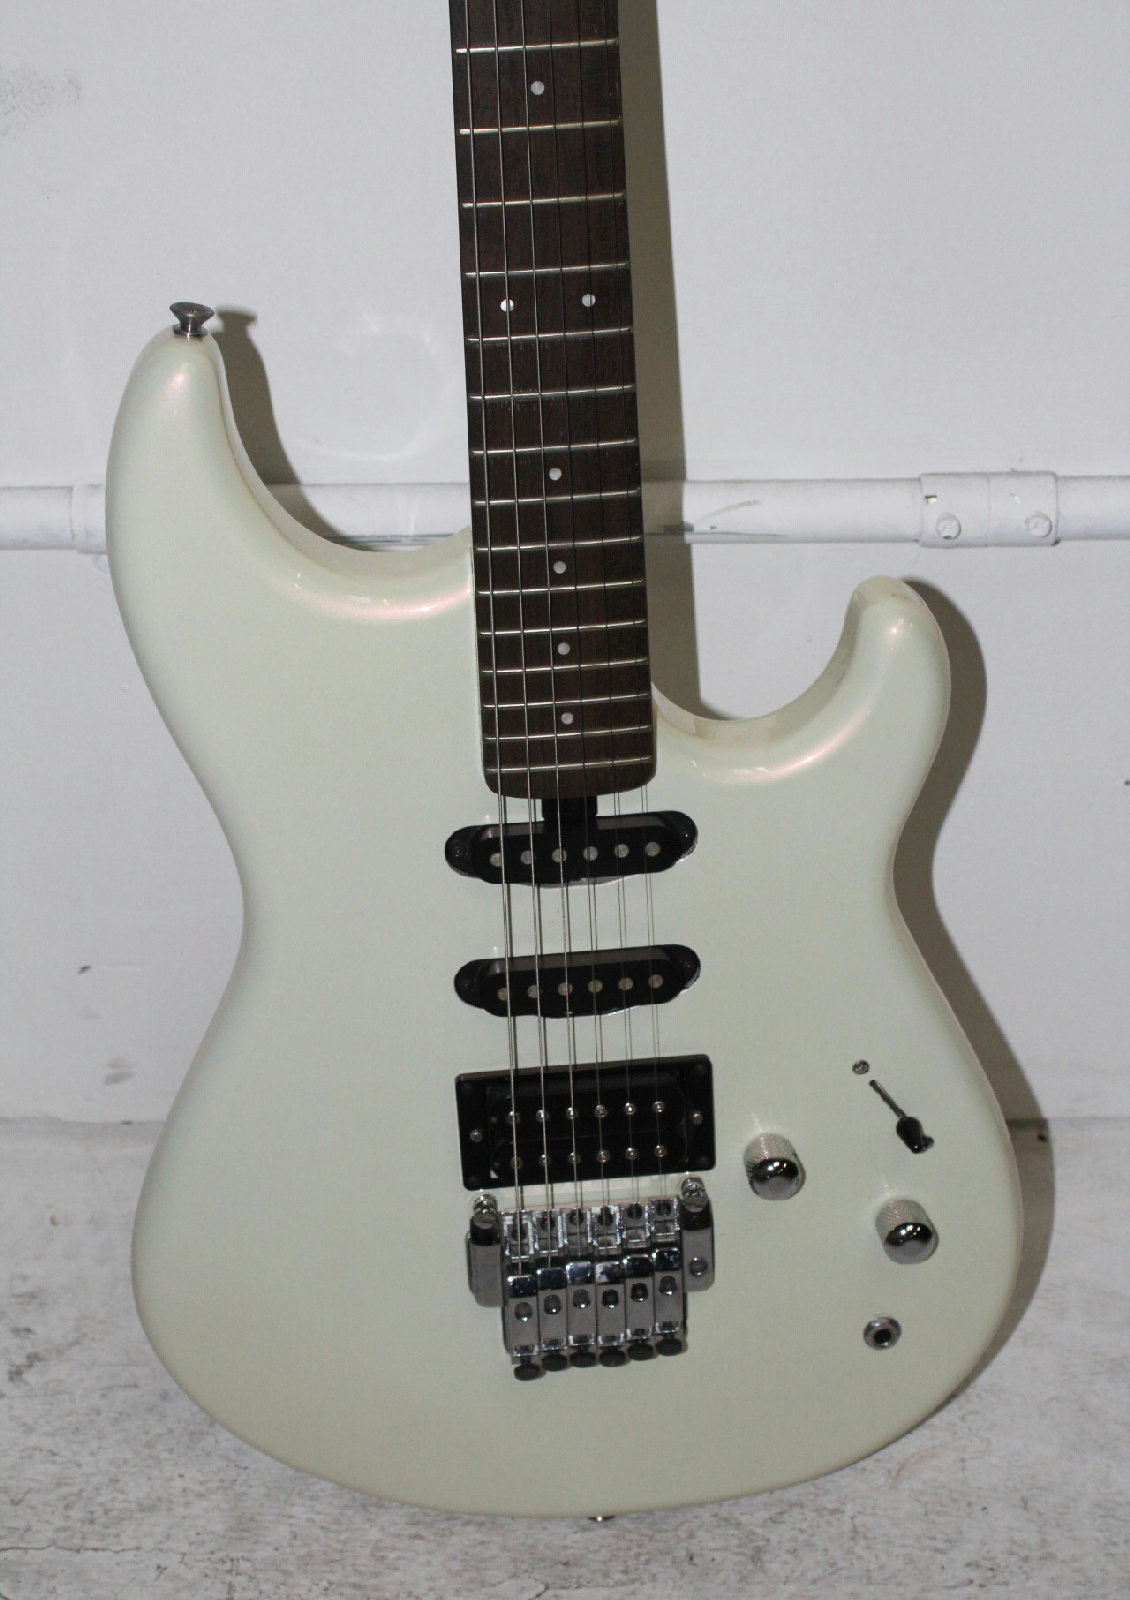 yamaha se 350 electric guitar in hard case scale 32 ebay. Black Bedroom Furniture Sets. Home Design Ideas